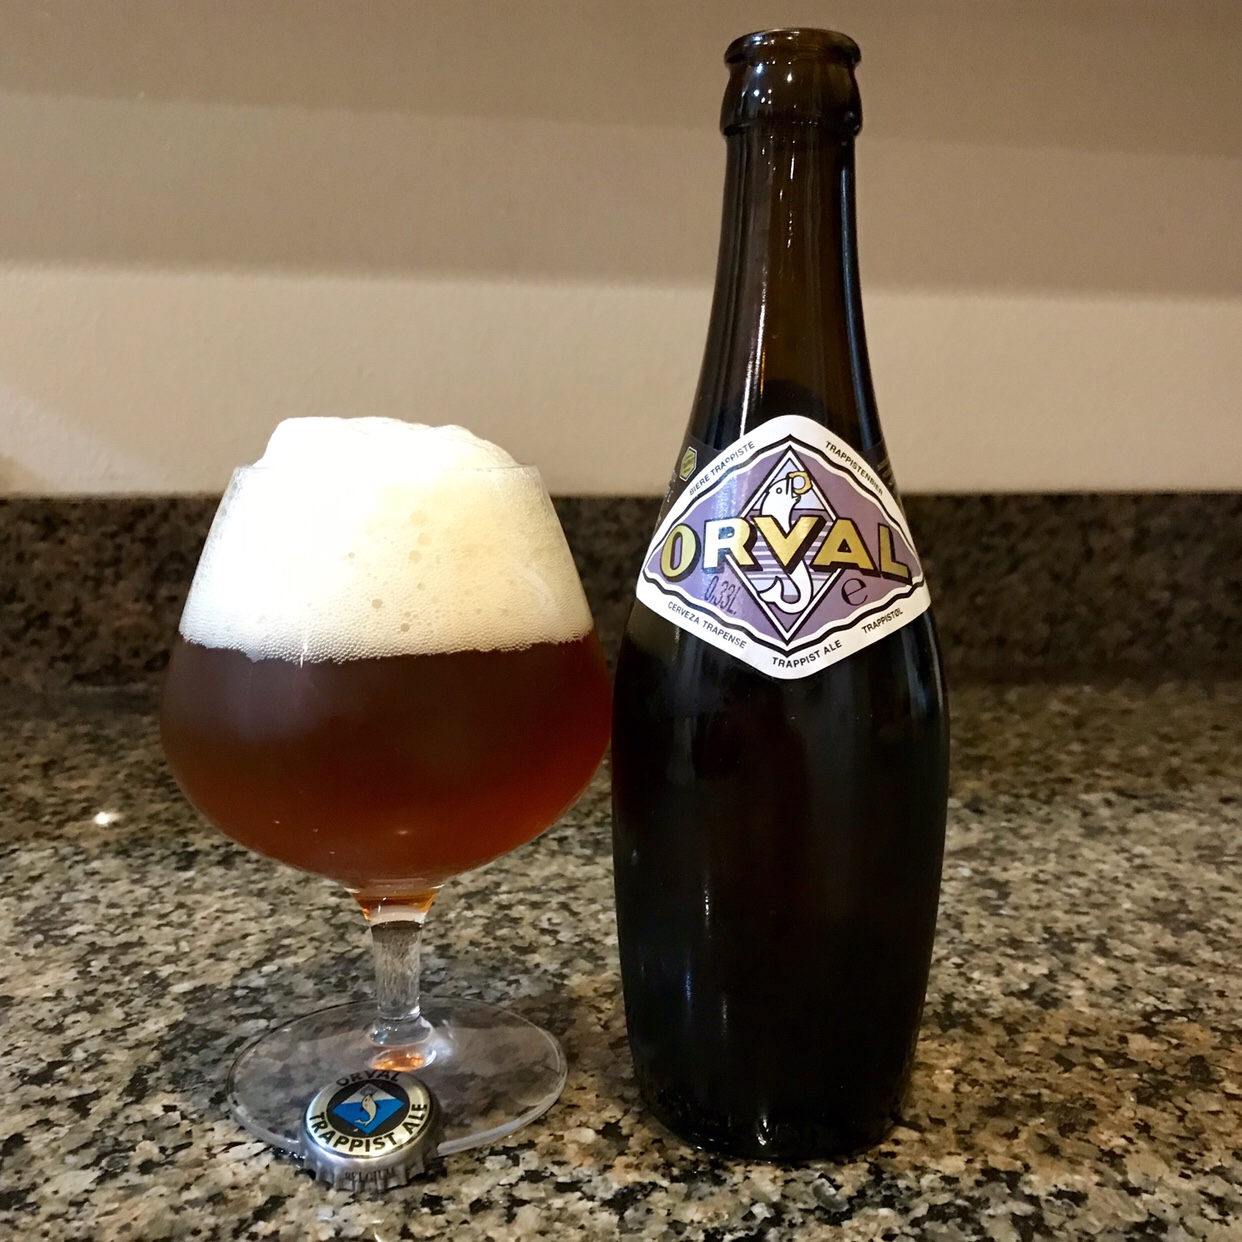 Orval by Brasserie D'Orval